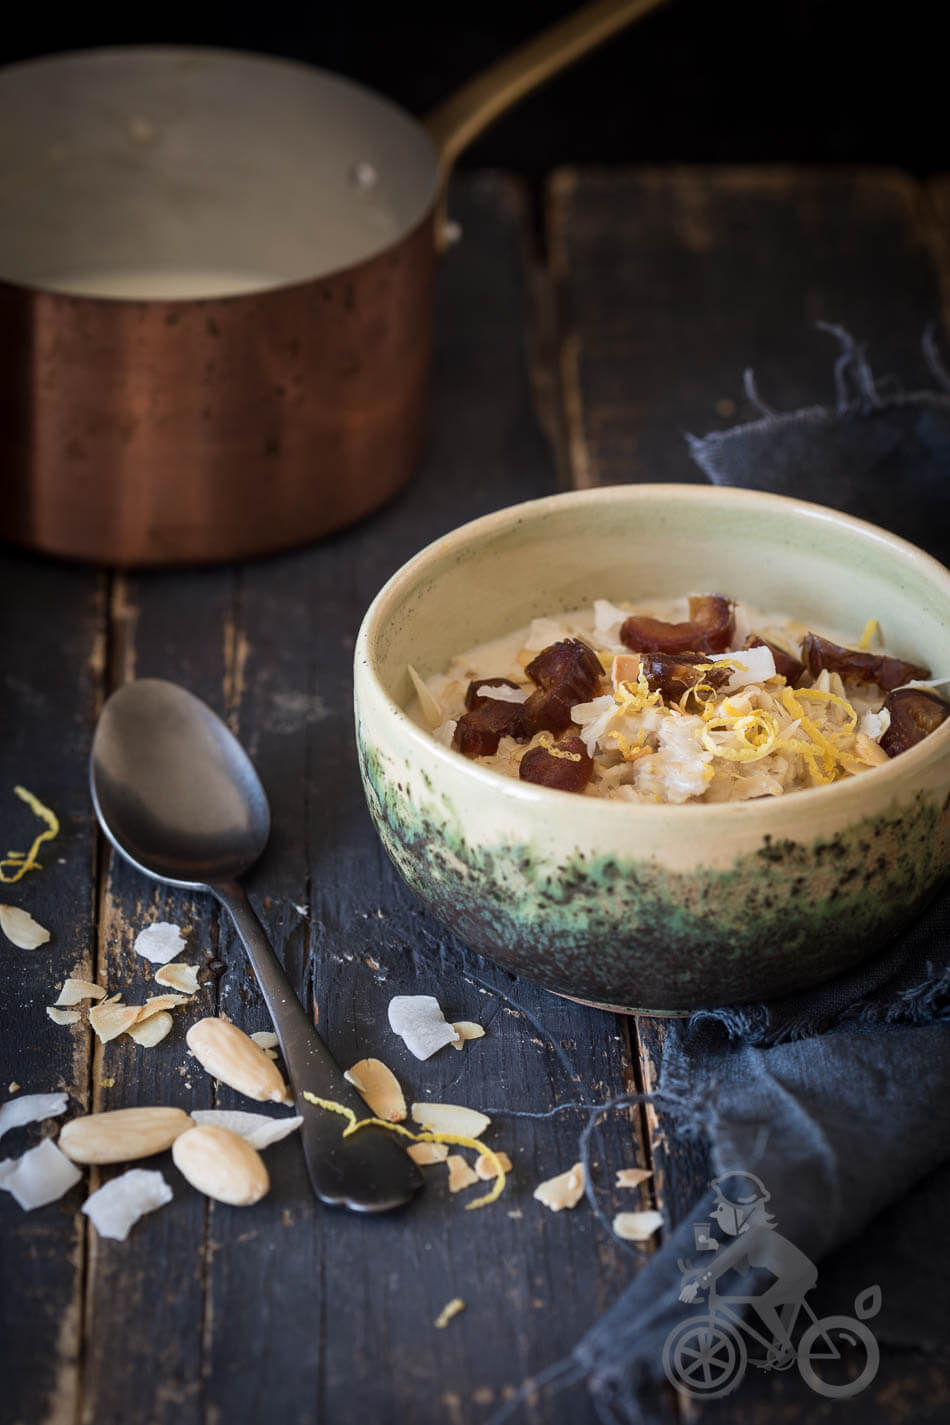 Oats with lemon, dates and nuts | insimoneskitchen.com